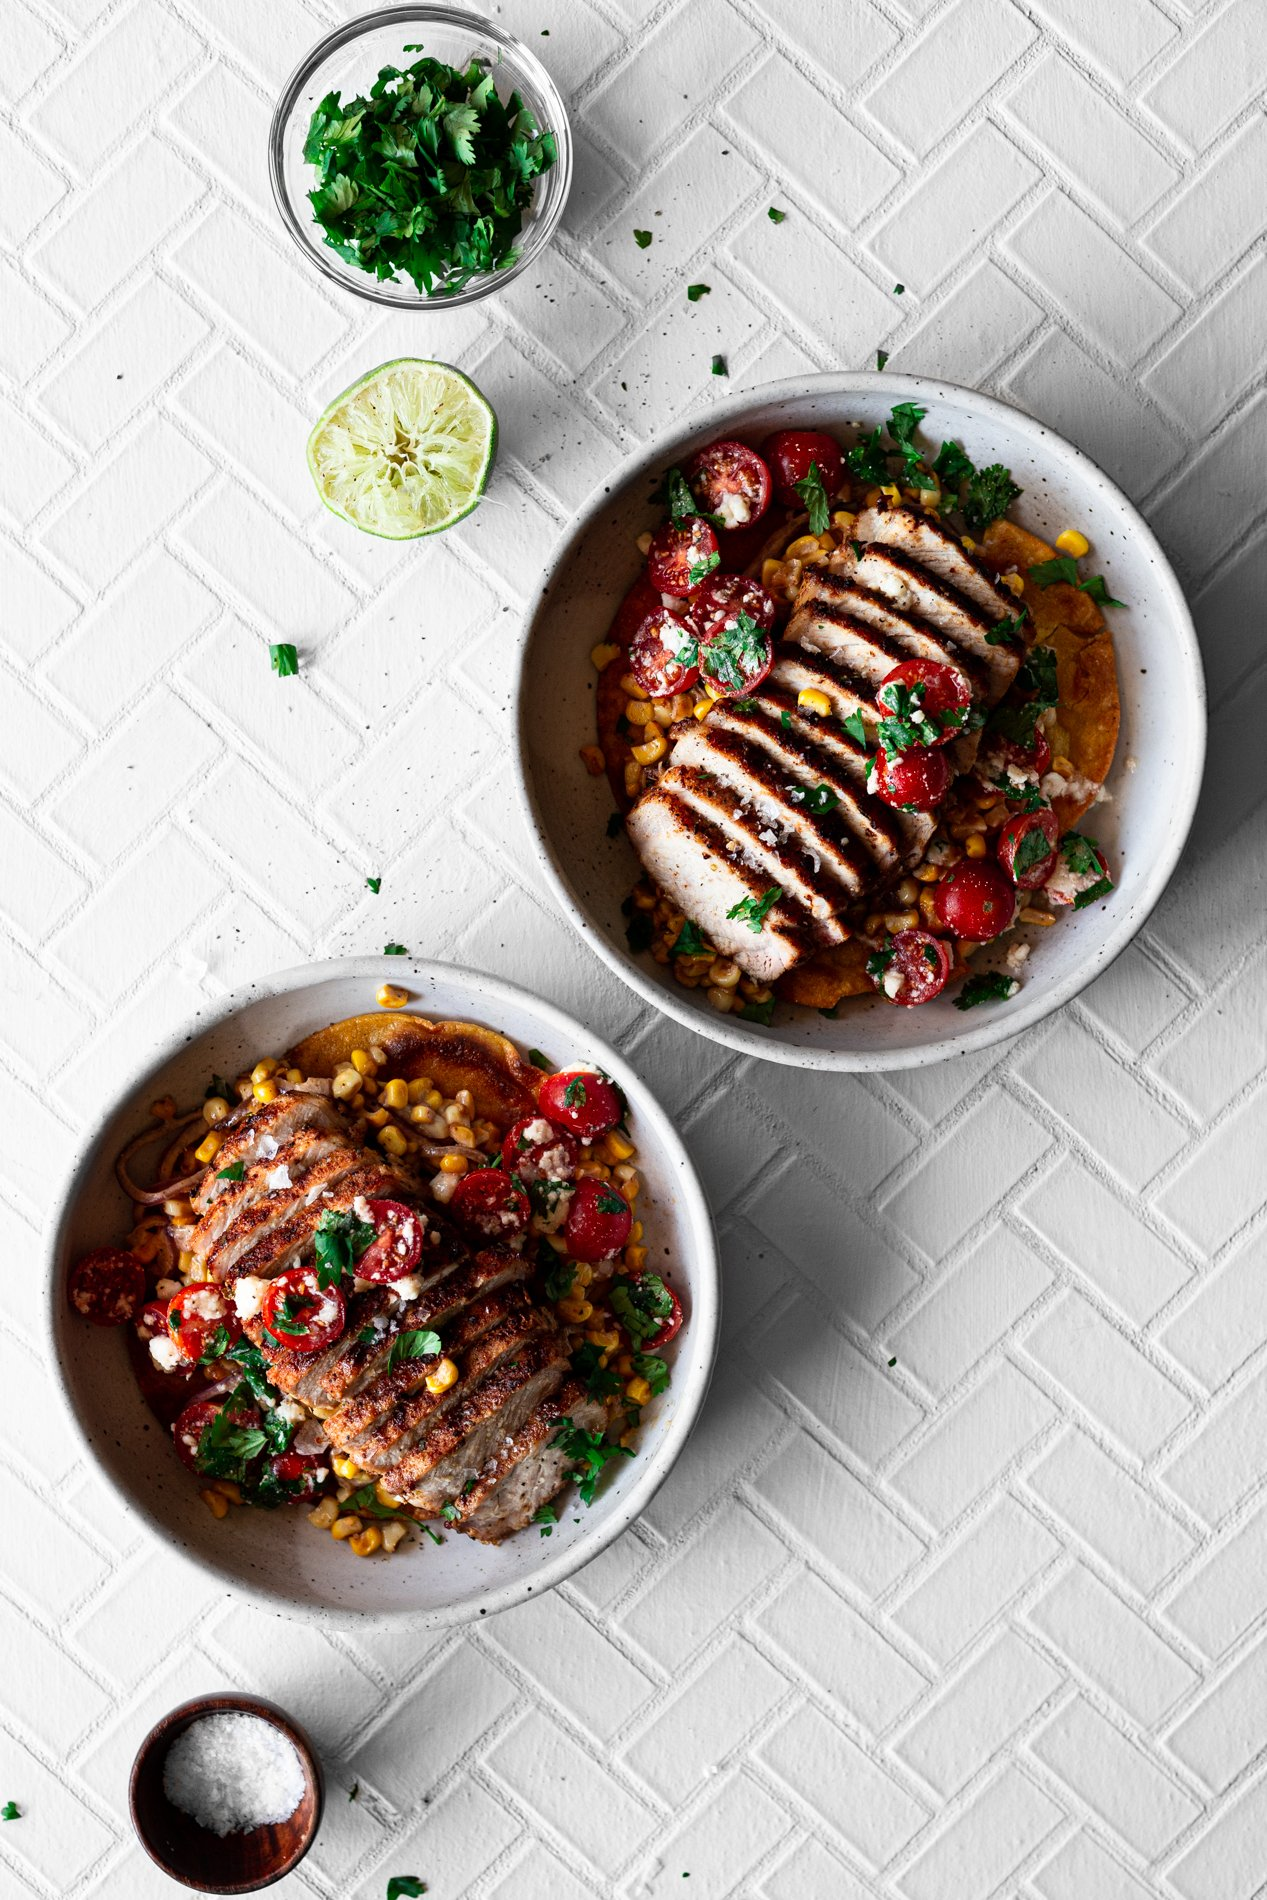 two bowls of spiced fajita pork on mexican street corn with fresh salsa